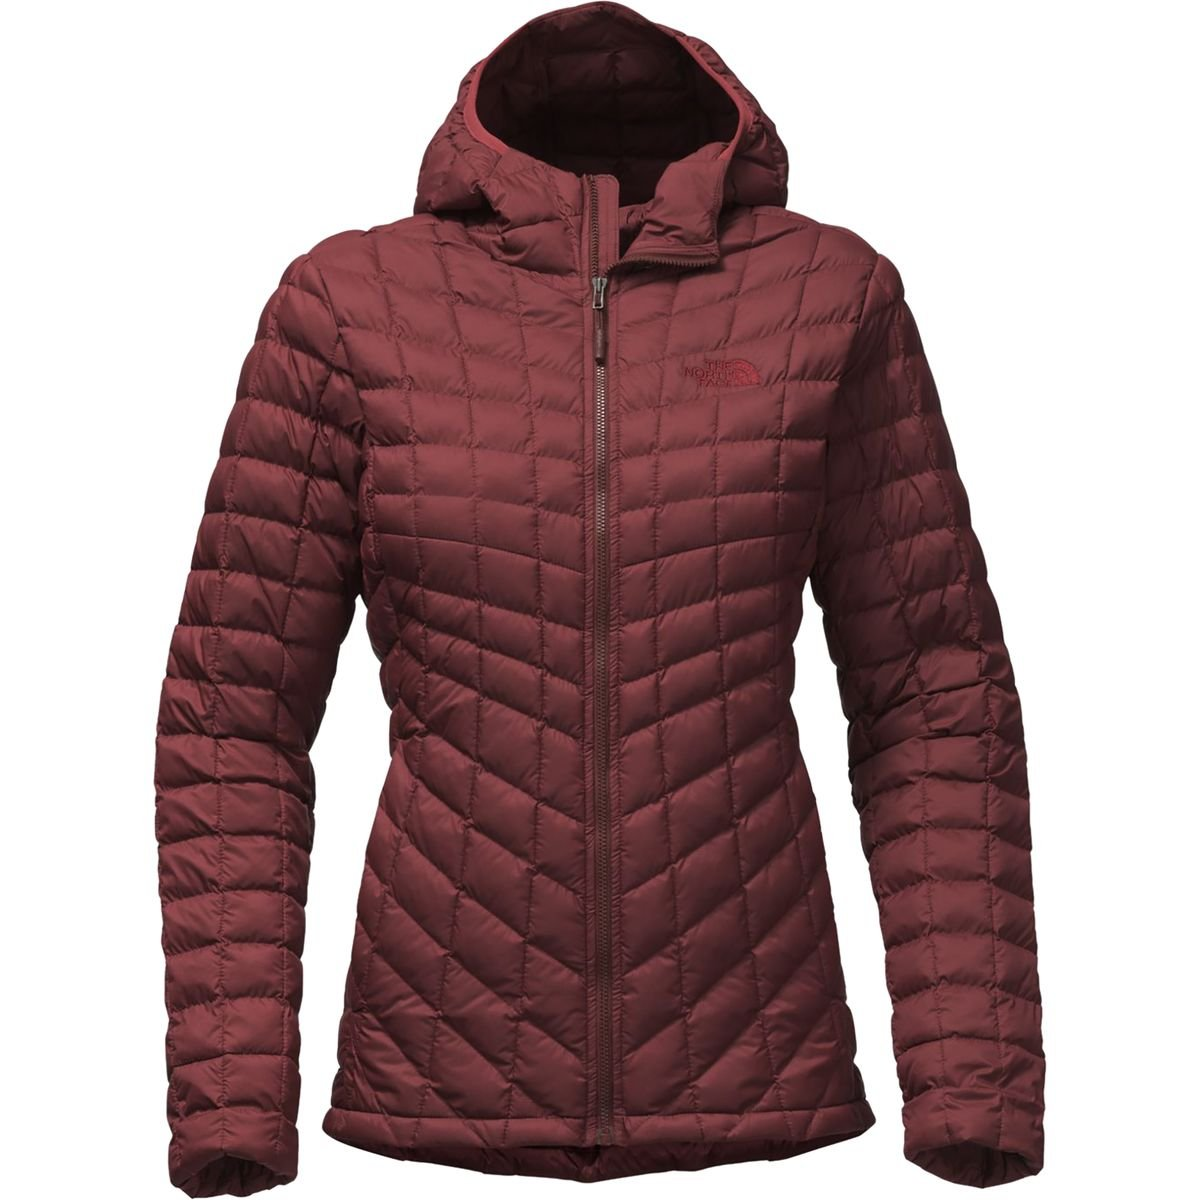 The North Face Women's Thermoball Hoodie - Sequoia Red Matte - M (Past Season) by The North Face